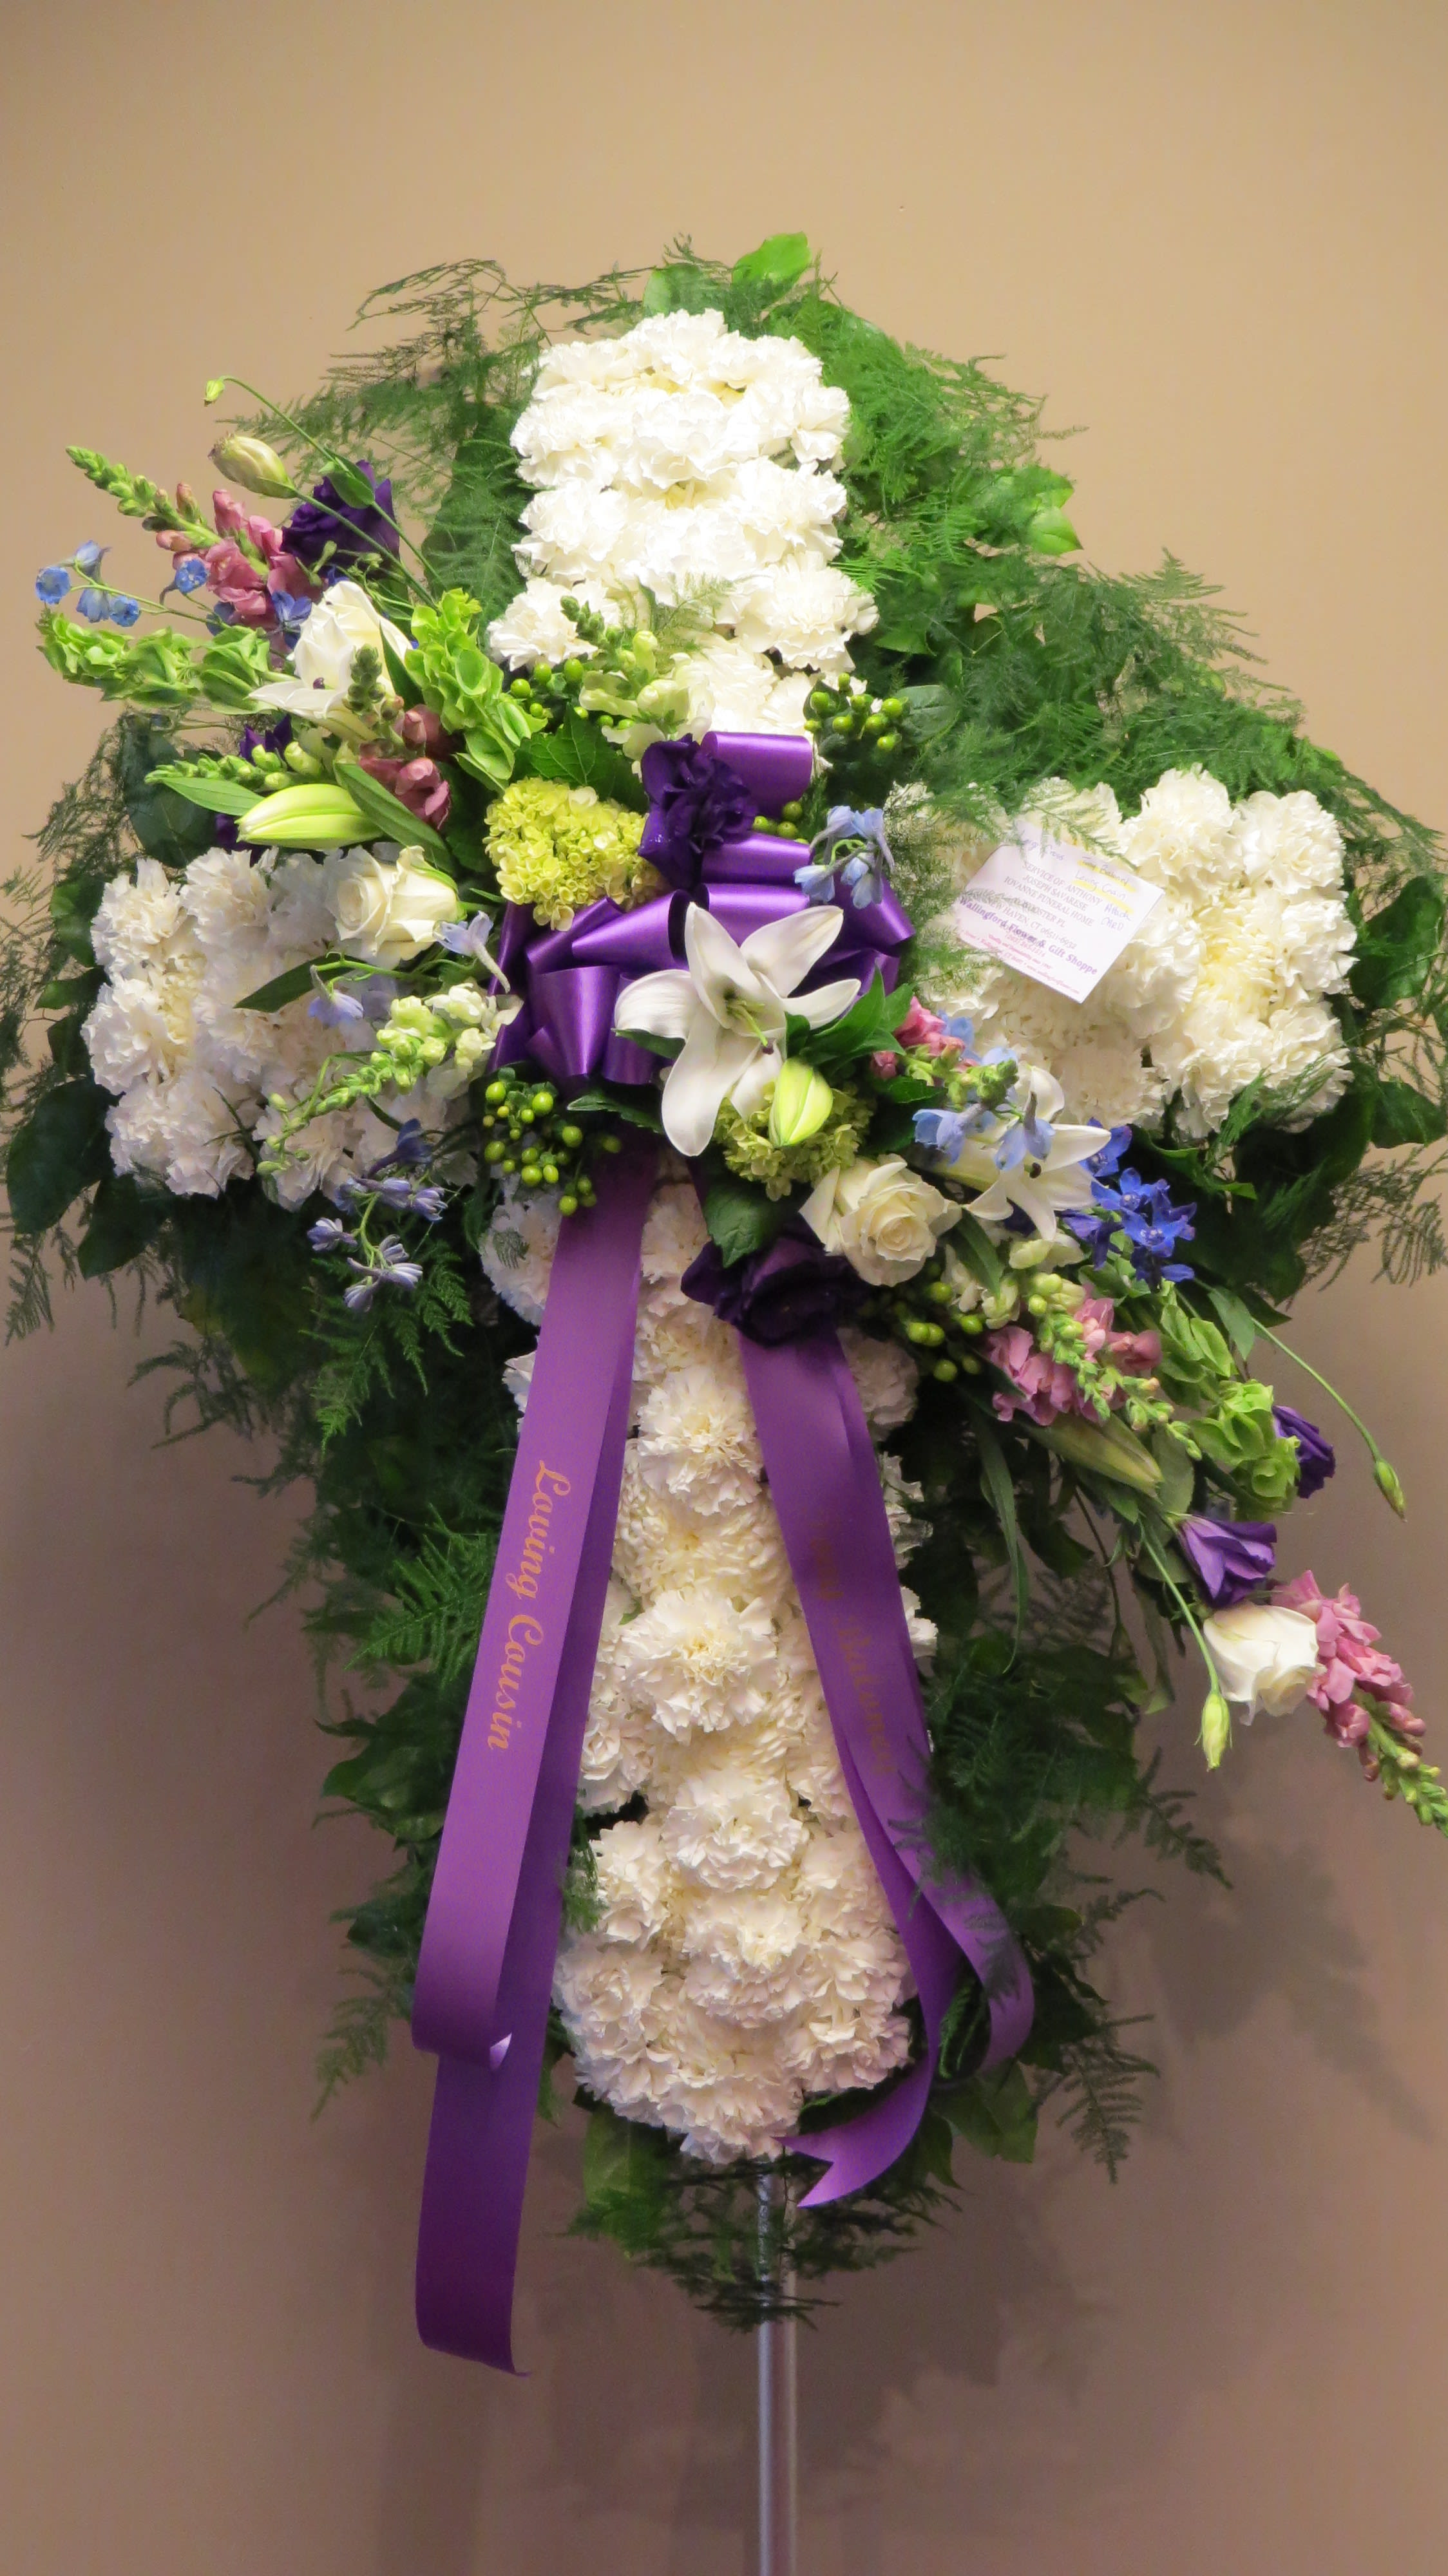 Lovely Lavender and Blue Standing Cross - A cross consisting of simply elegant white flowers is